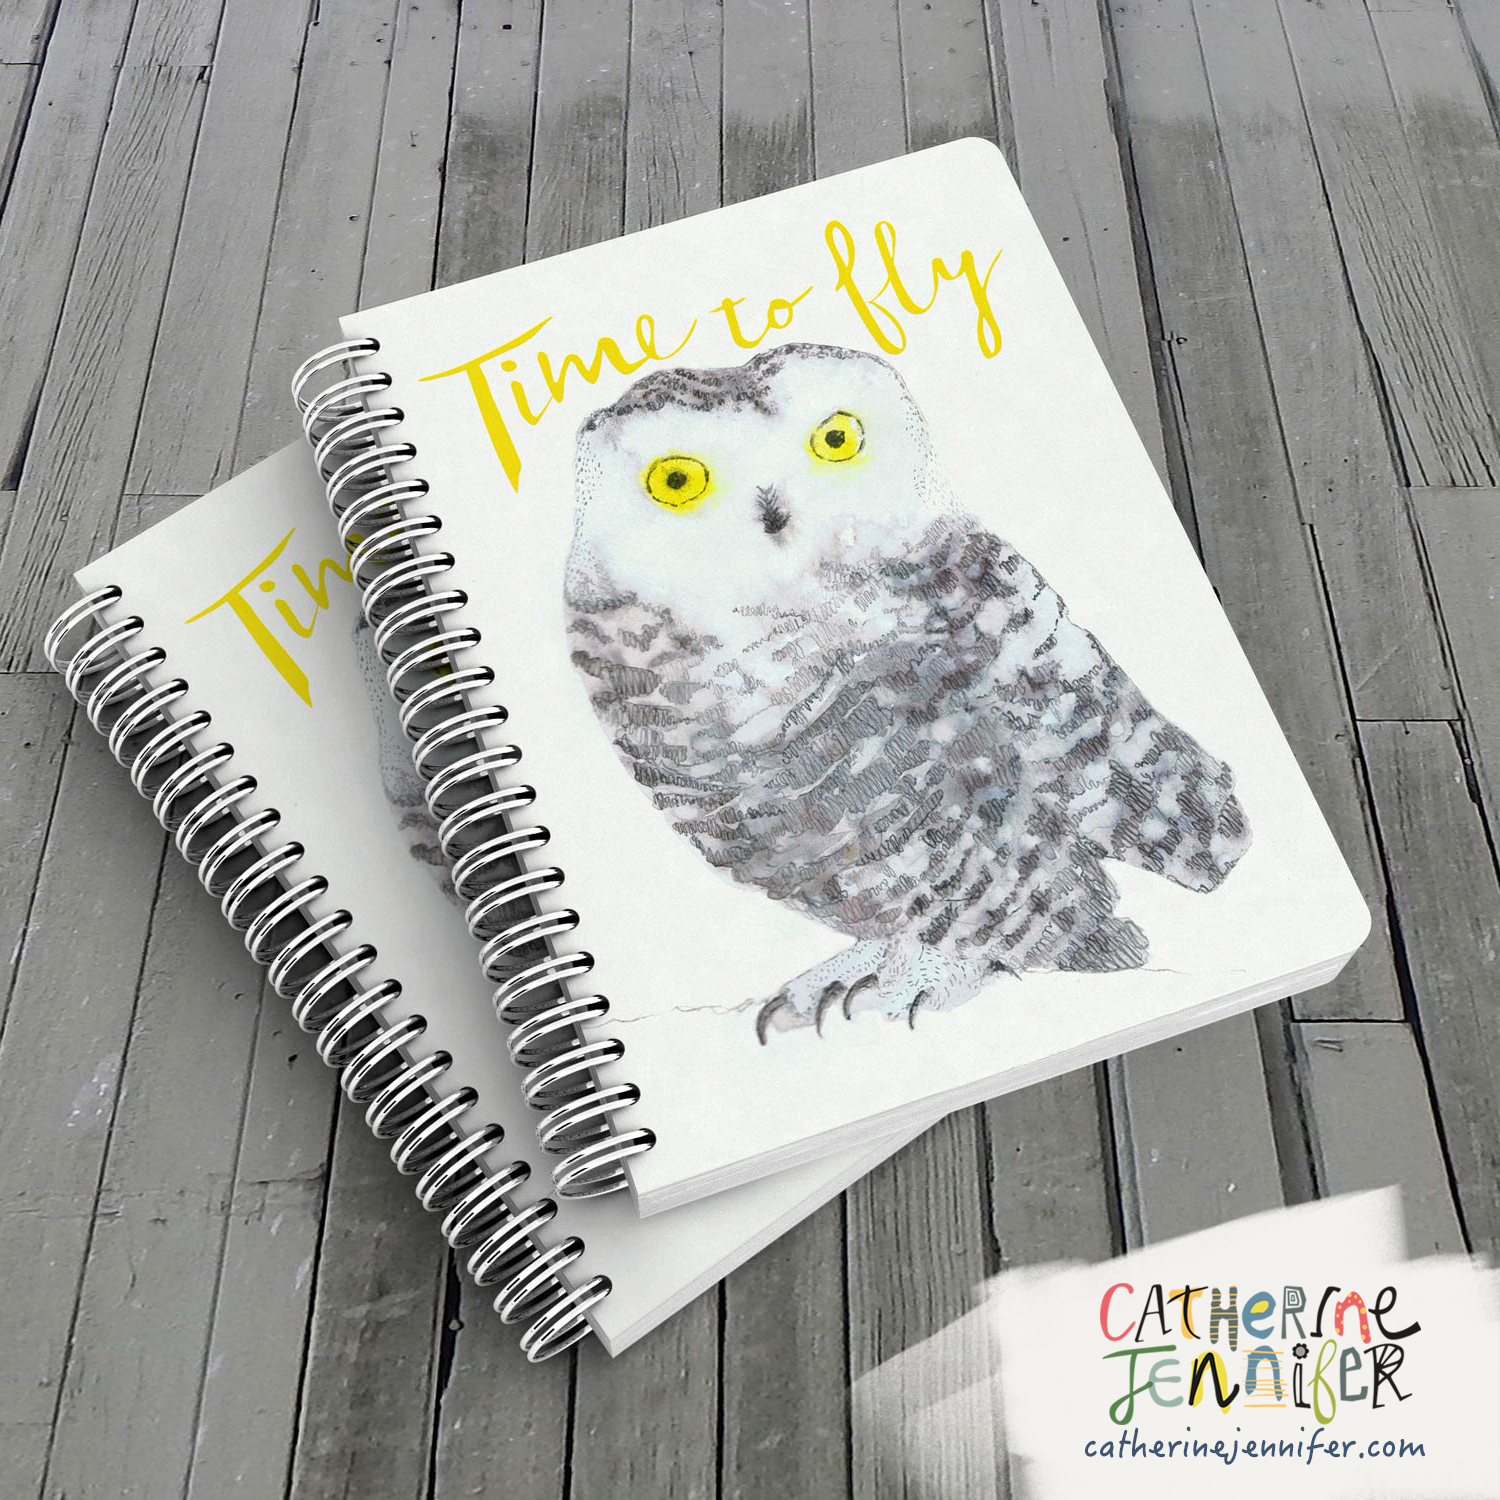 CatherineJennifer_Owl-Timetofly-Notebook.jpg